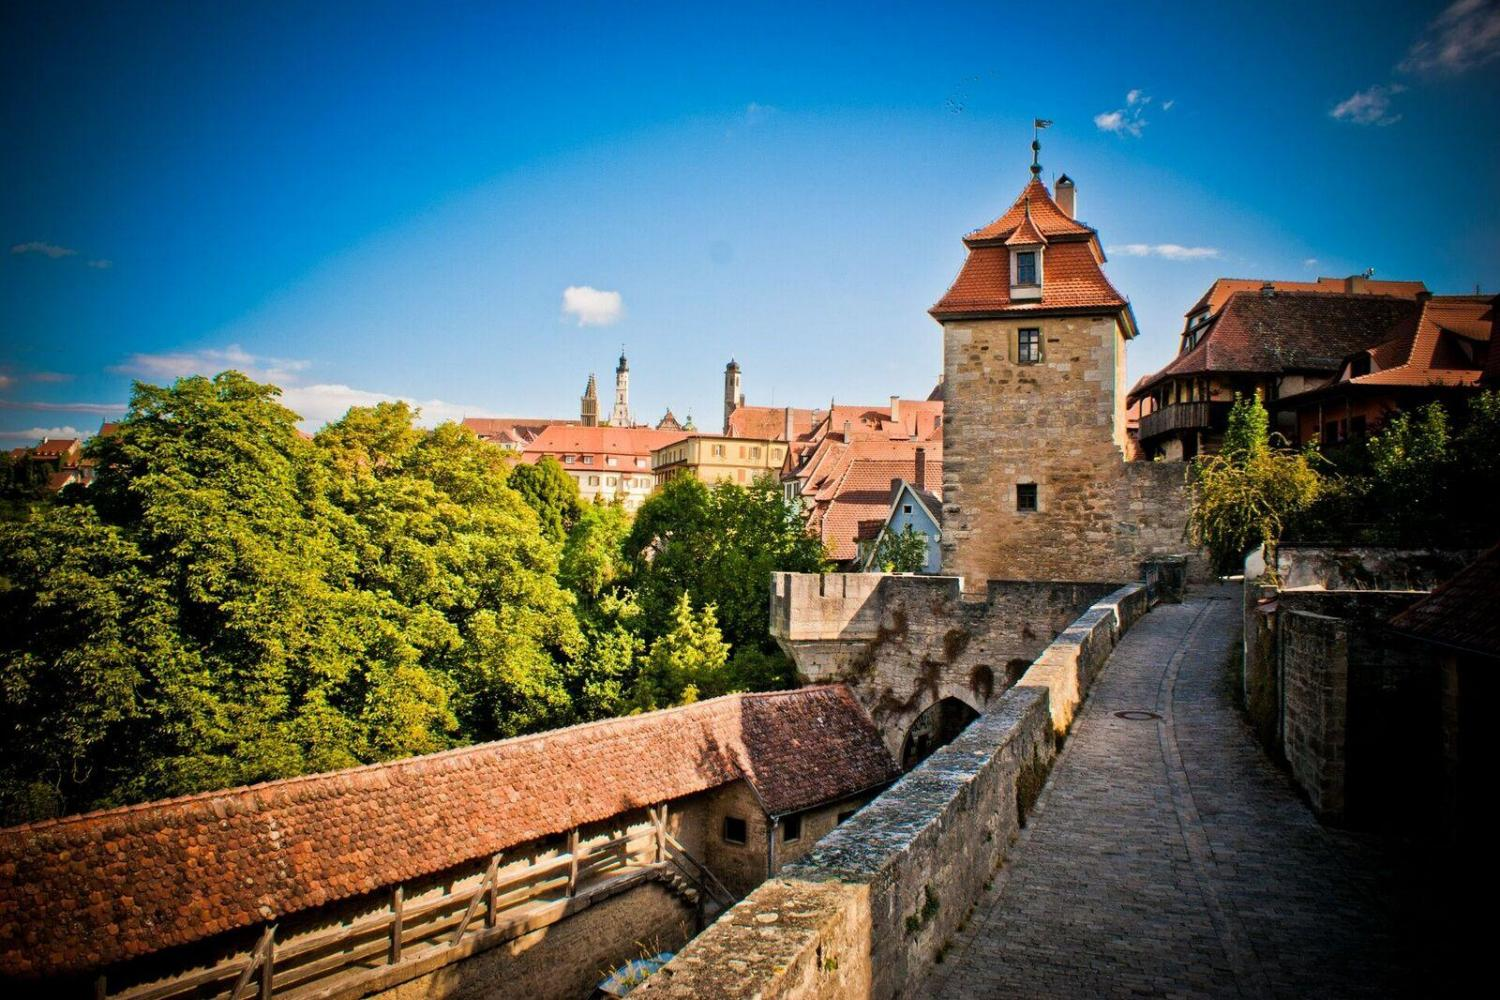 Fall in love with Germany on the Romantic Road from Harburg to Rothenburg